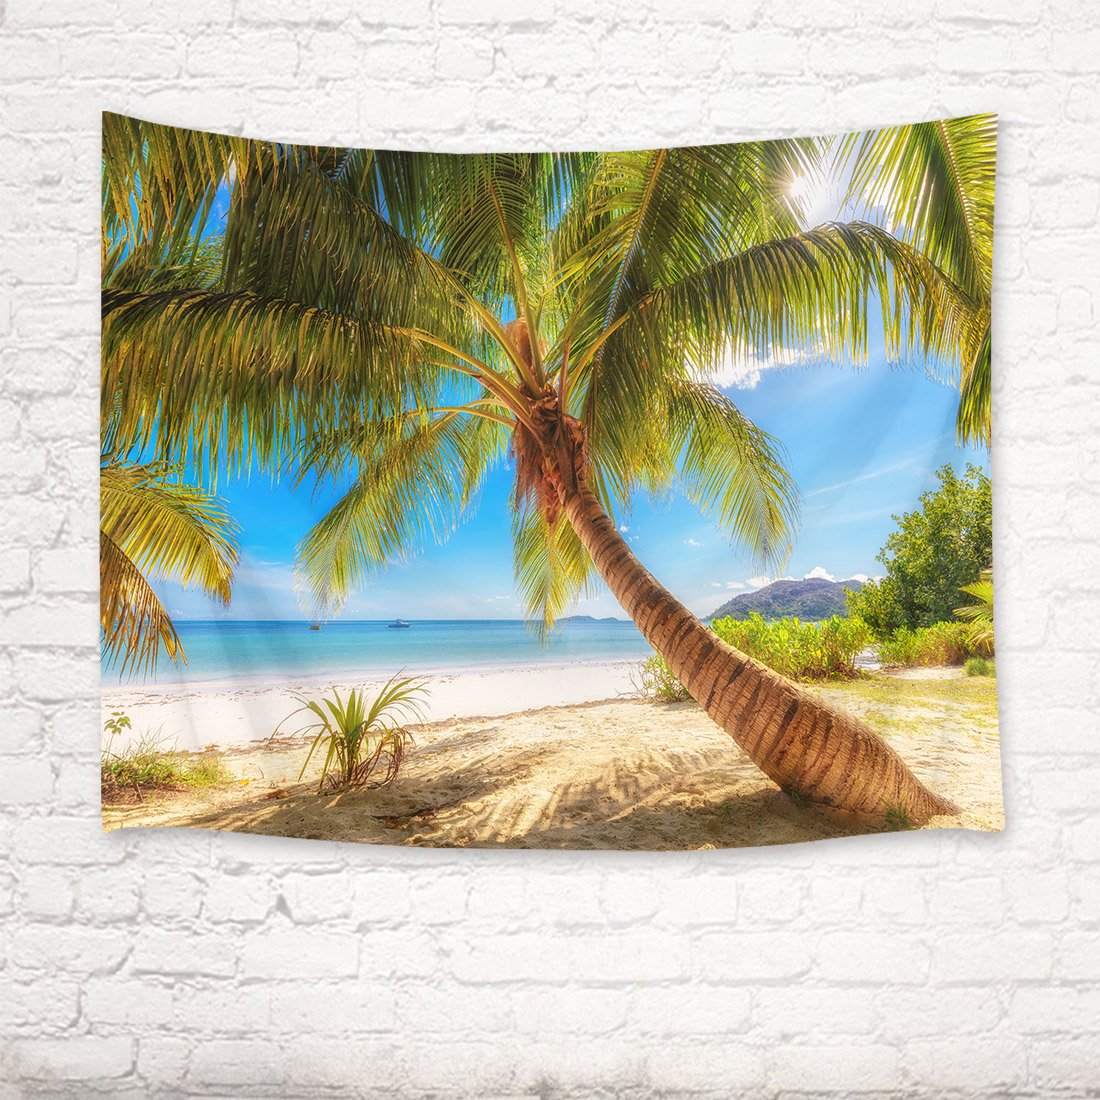 HVEST Ocean Tapestry Green Palm Trees on Tropical Beach Wall Hanging Summer Vacation Tapestries for Bedroom Living Room Dorm Party Decor,80Wx60H inches